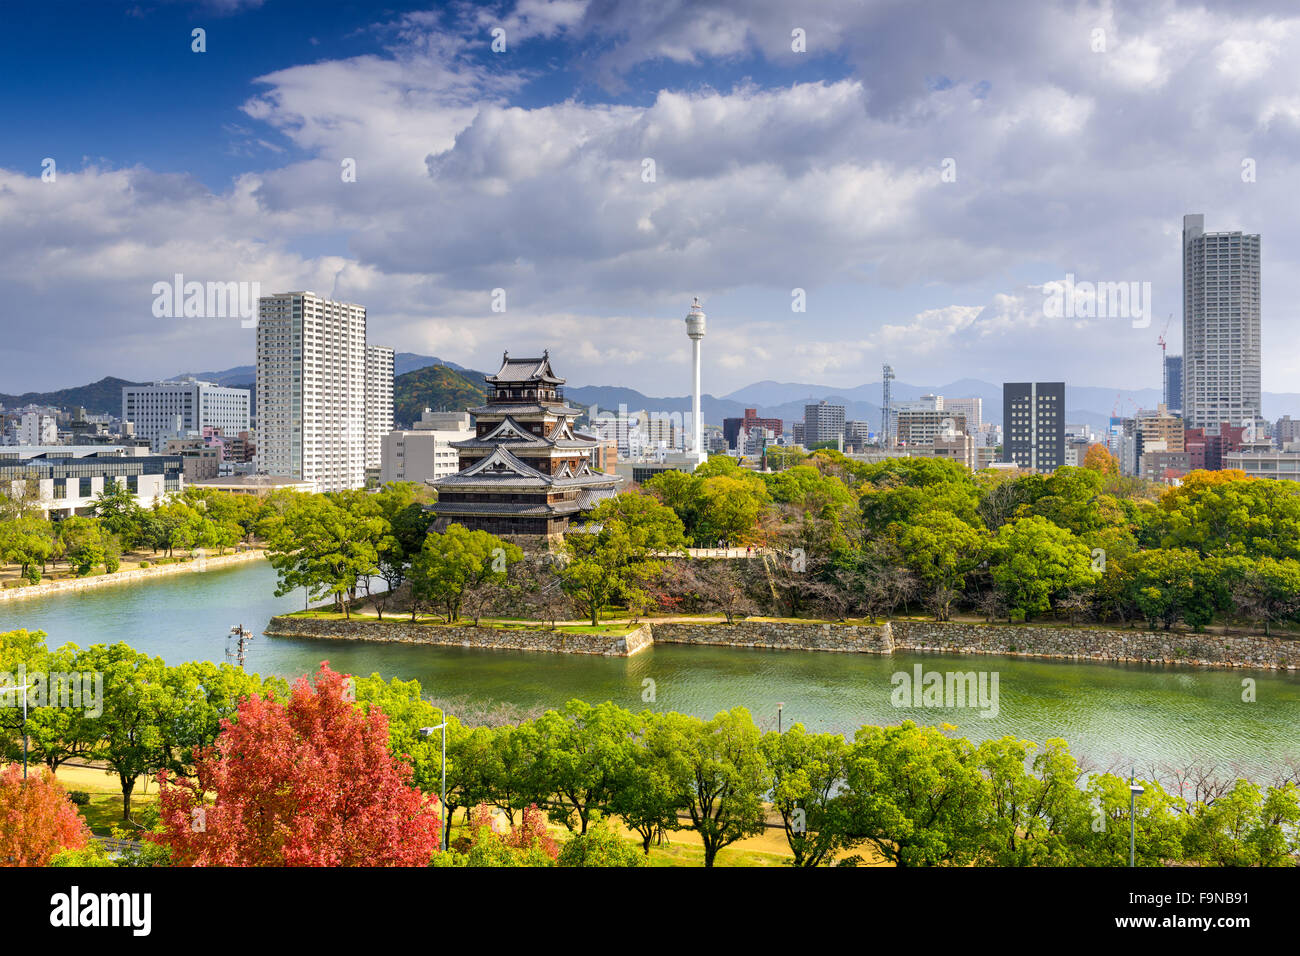 Hiroshima, Japan city skyline at the castle. - Stock Image